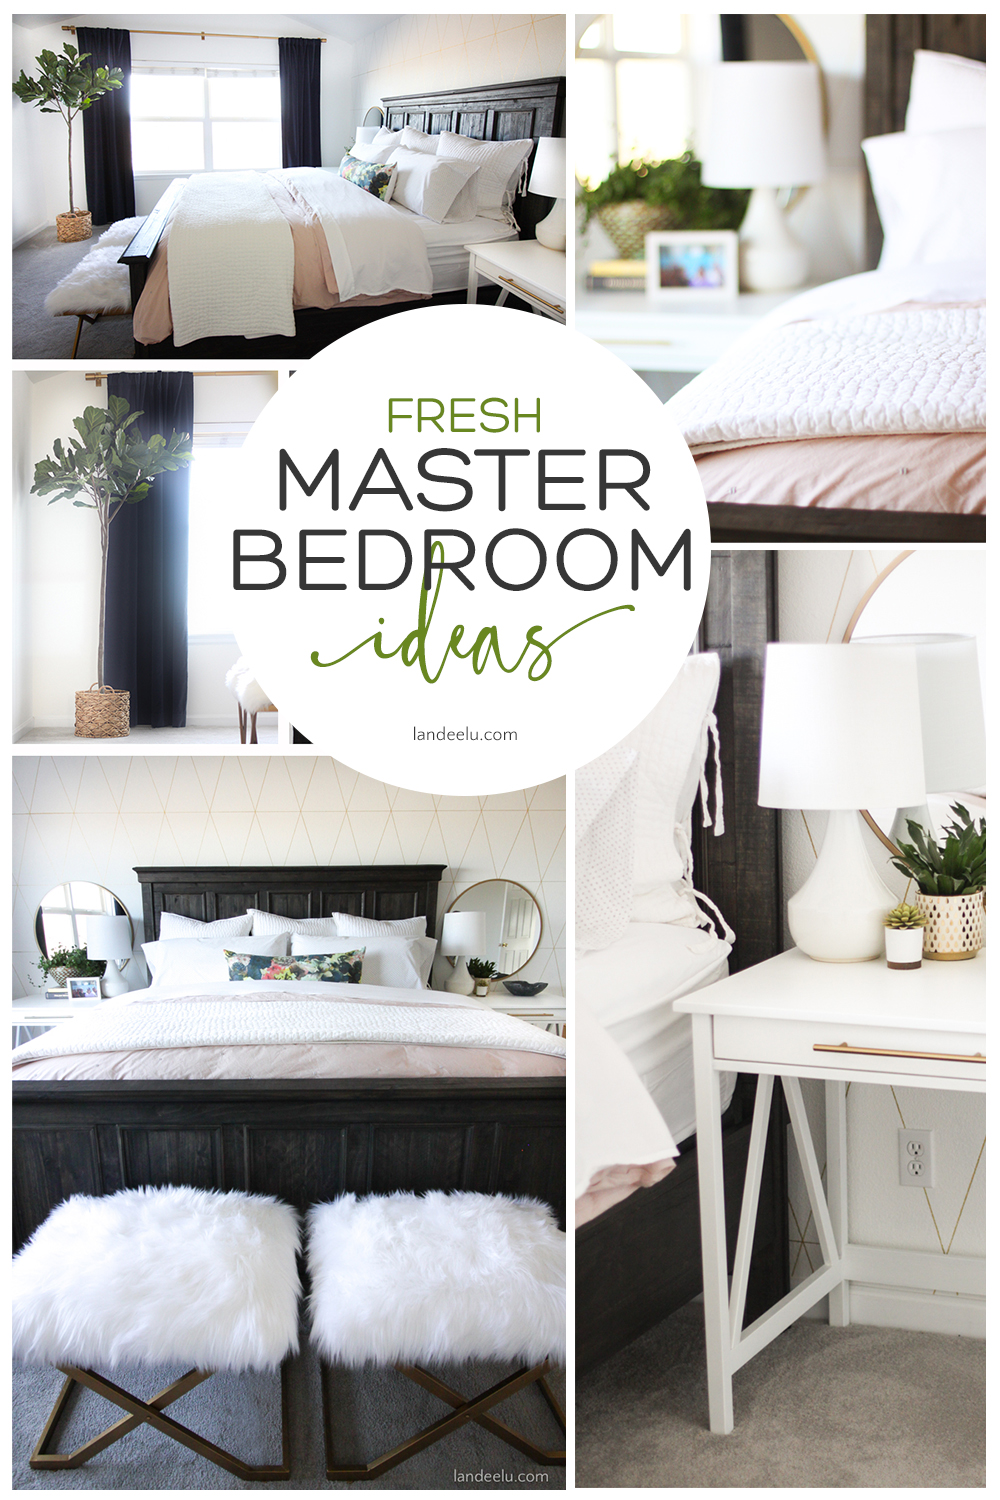 Love this transformation! Lots of awesome master bedroom ideas.  #masterbedroom #bedroom #bedroomideas #bedroomtransformation #bedroomaccessories